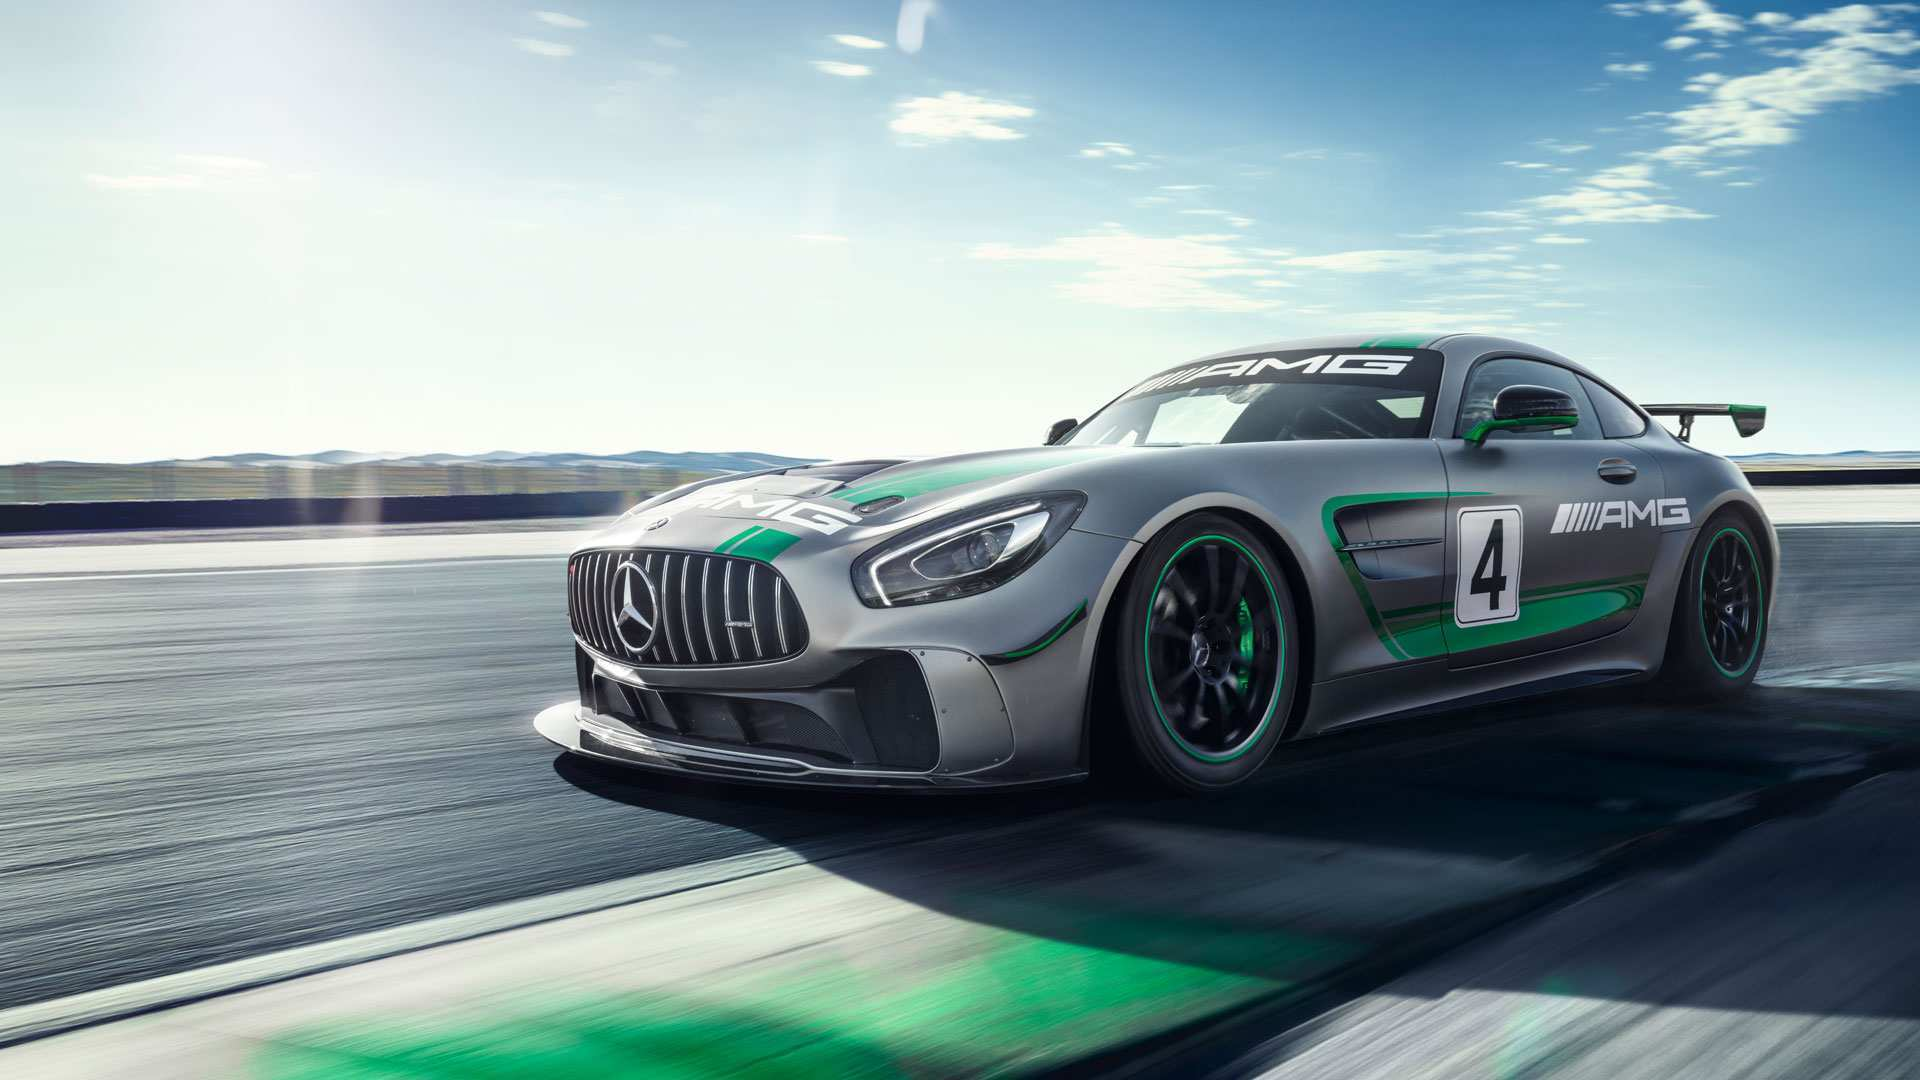 20 Great Mercedes 2019 Amg Gt4 Specs for Mercedes 2019 Amg Gt4